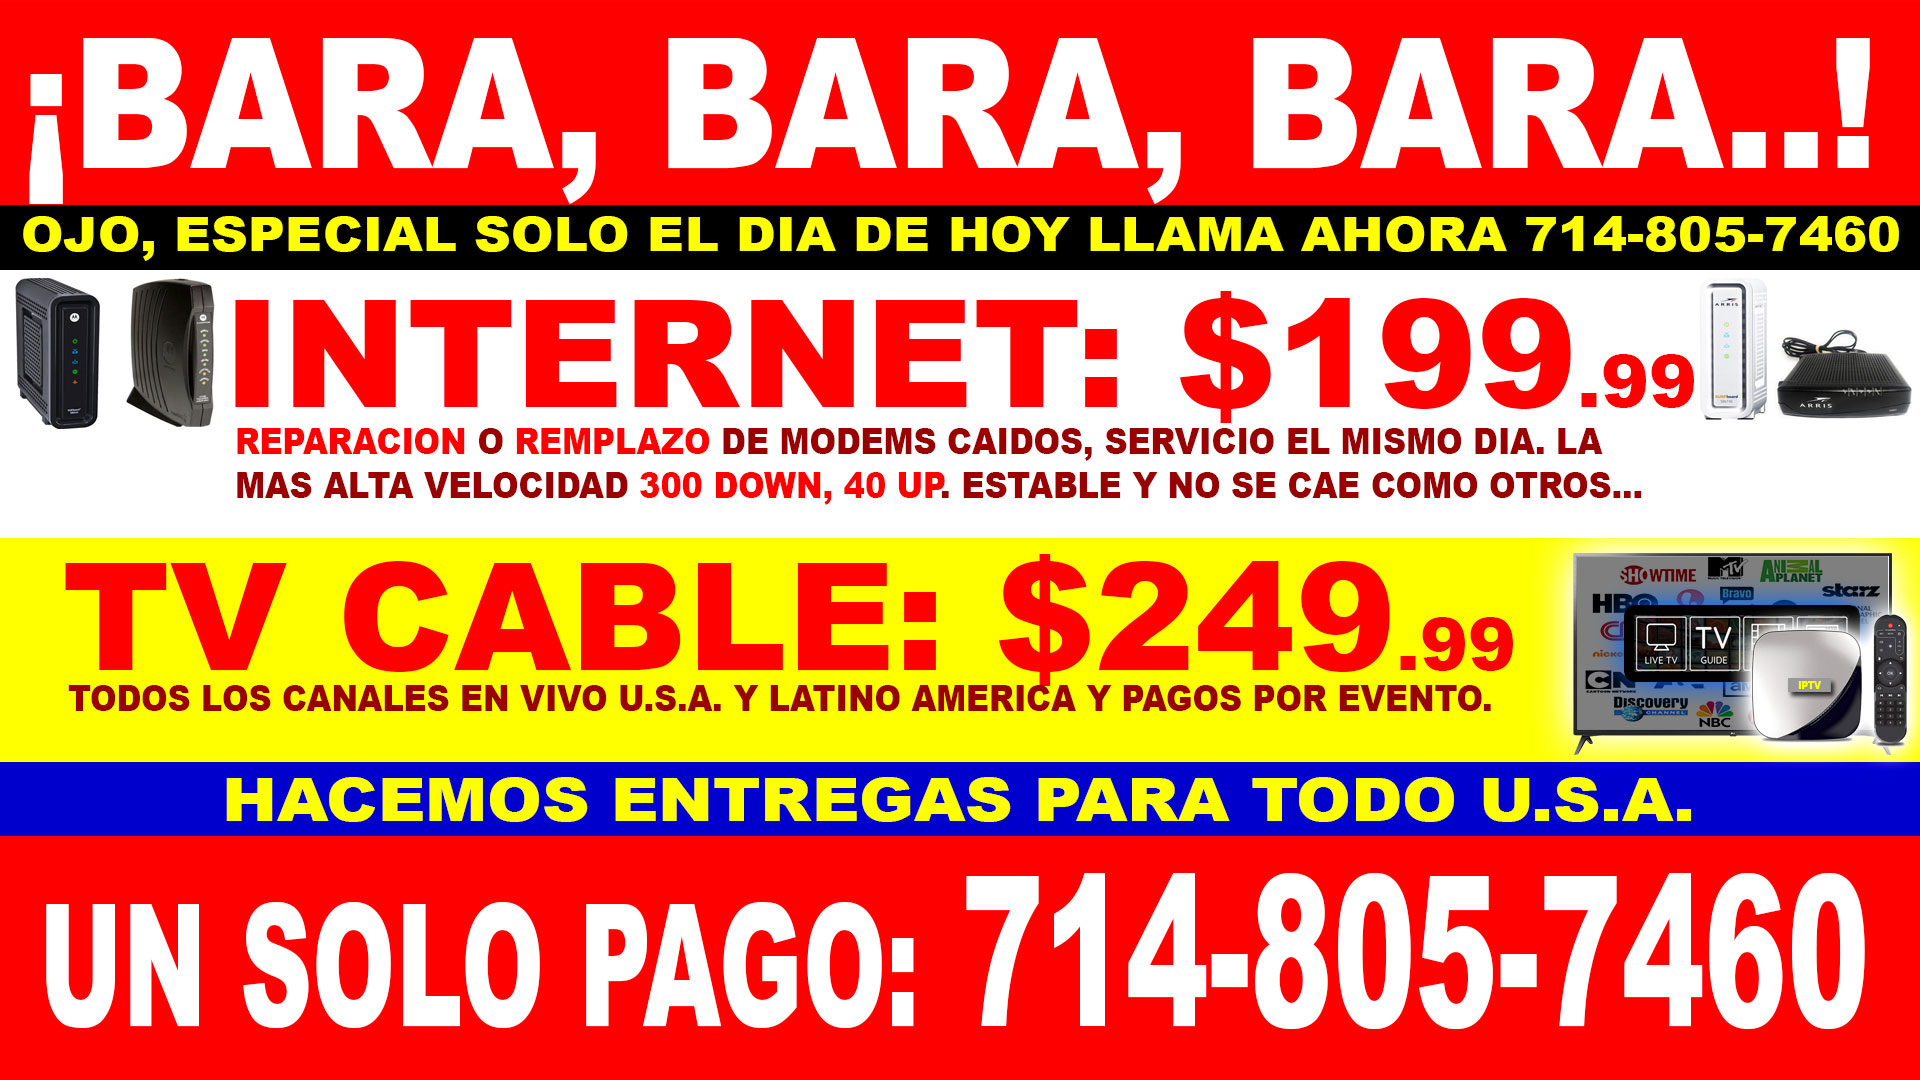 INTERNET Y TV BARA, BARA, BARA